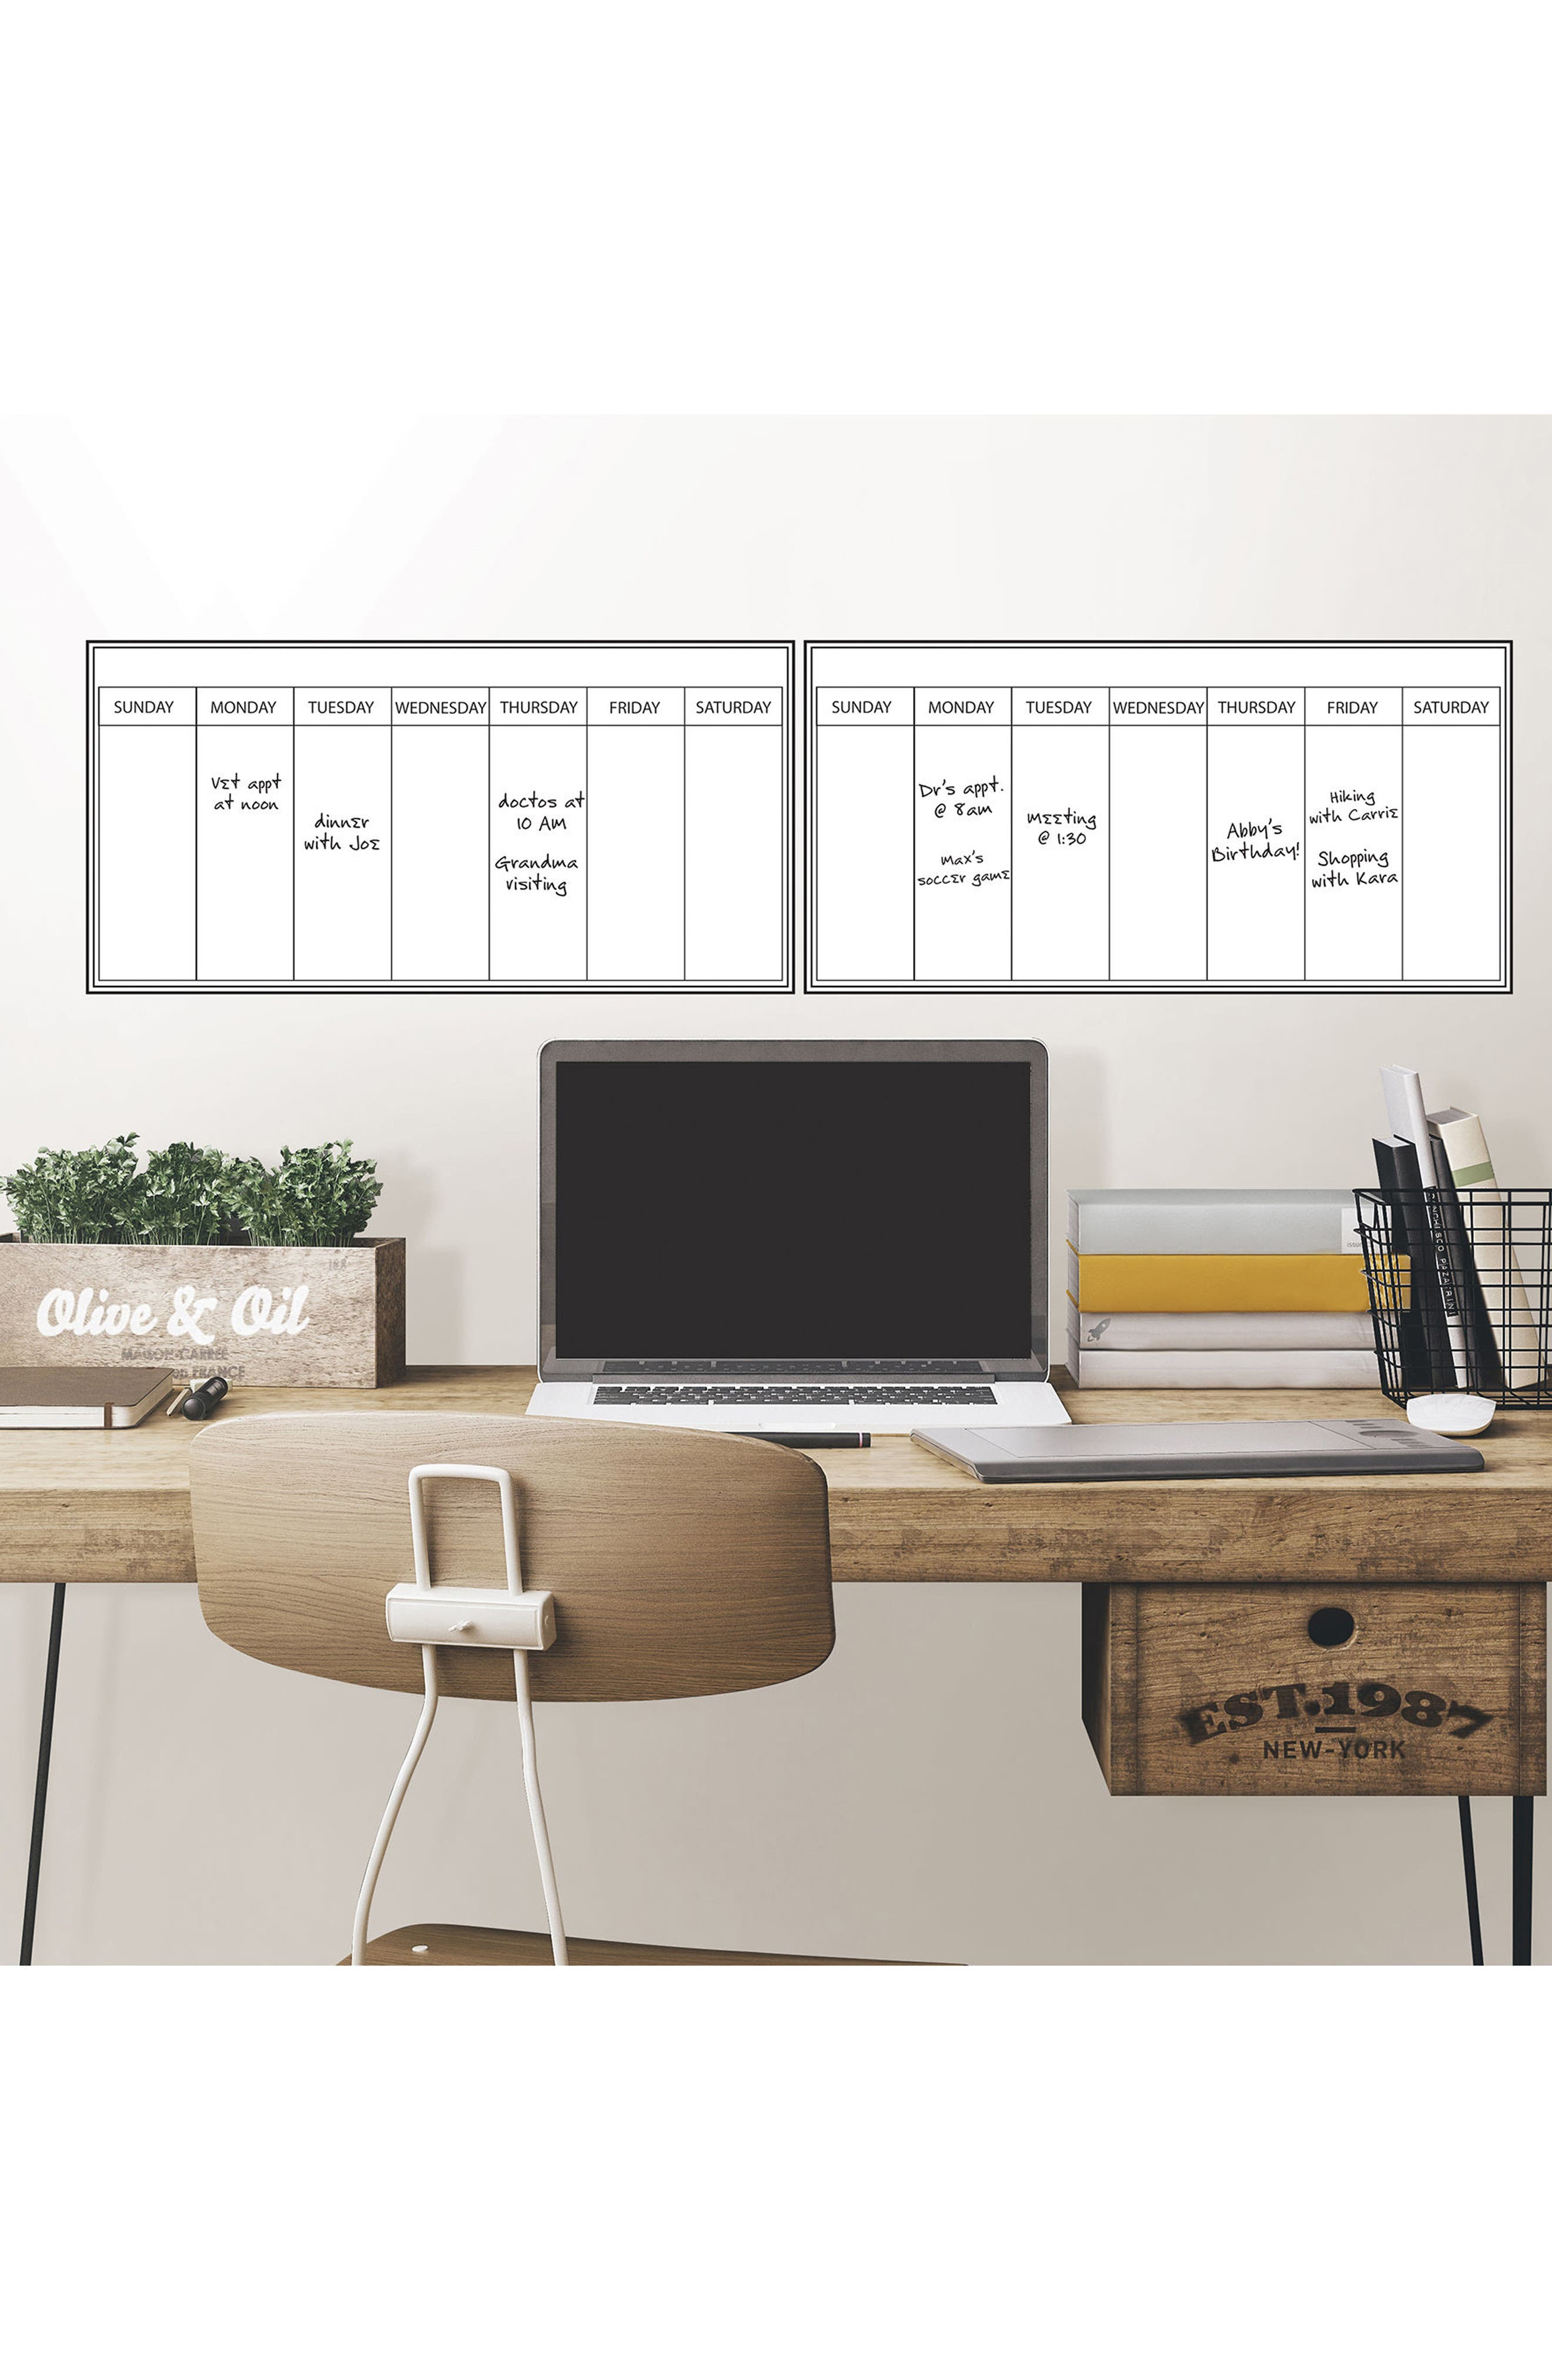 Weekly Dry Erase Calendar Decal,                             Alternate thumbnail 2, color,                             100